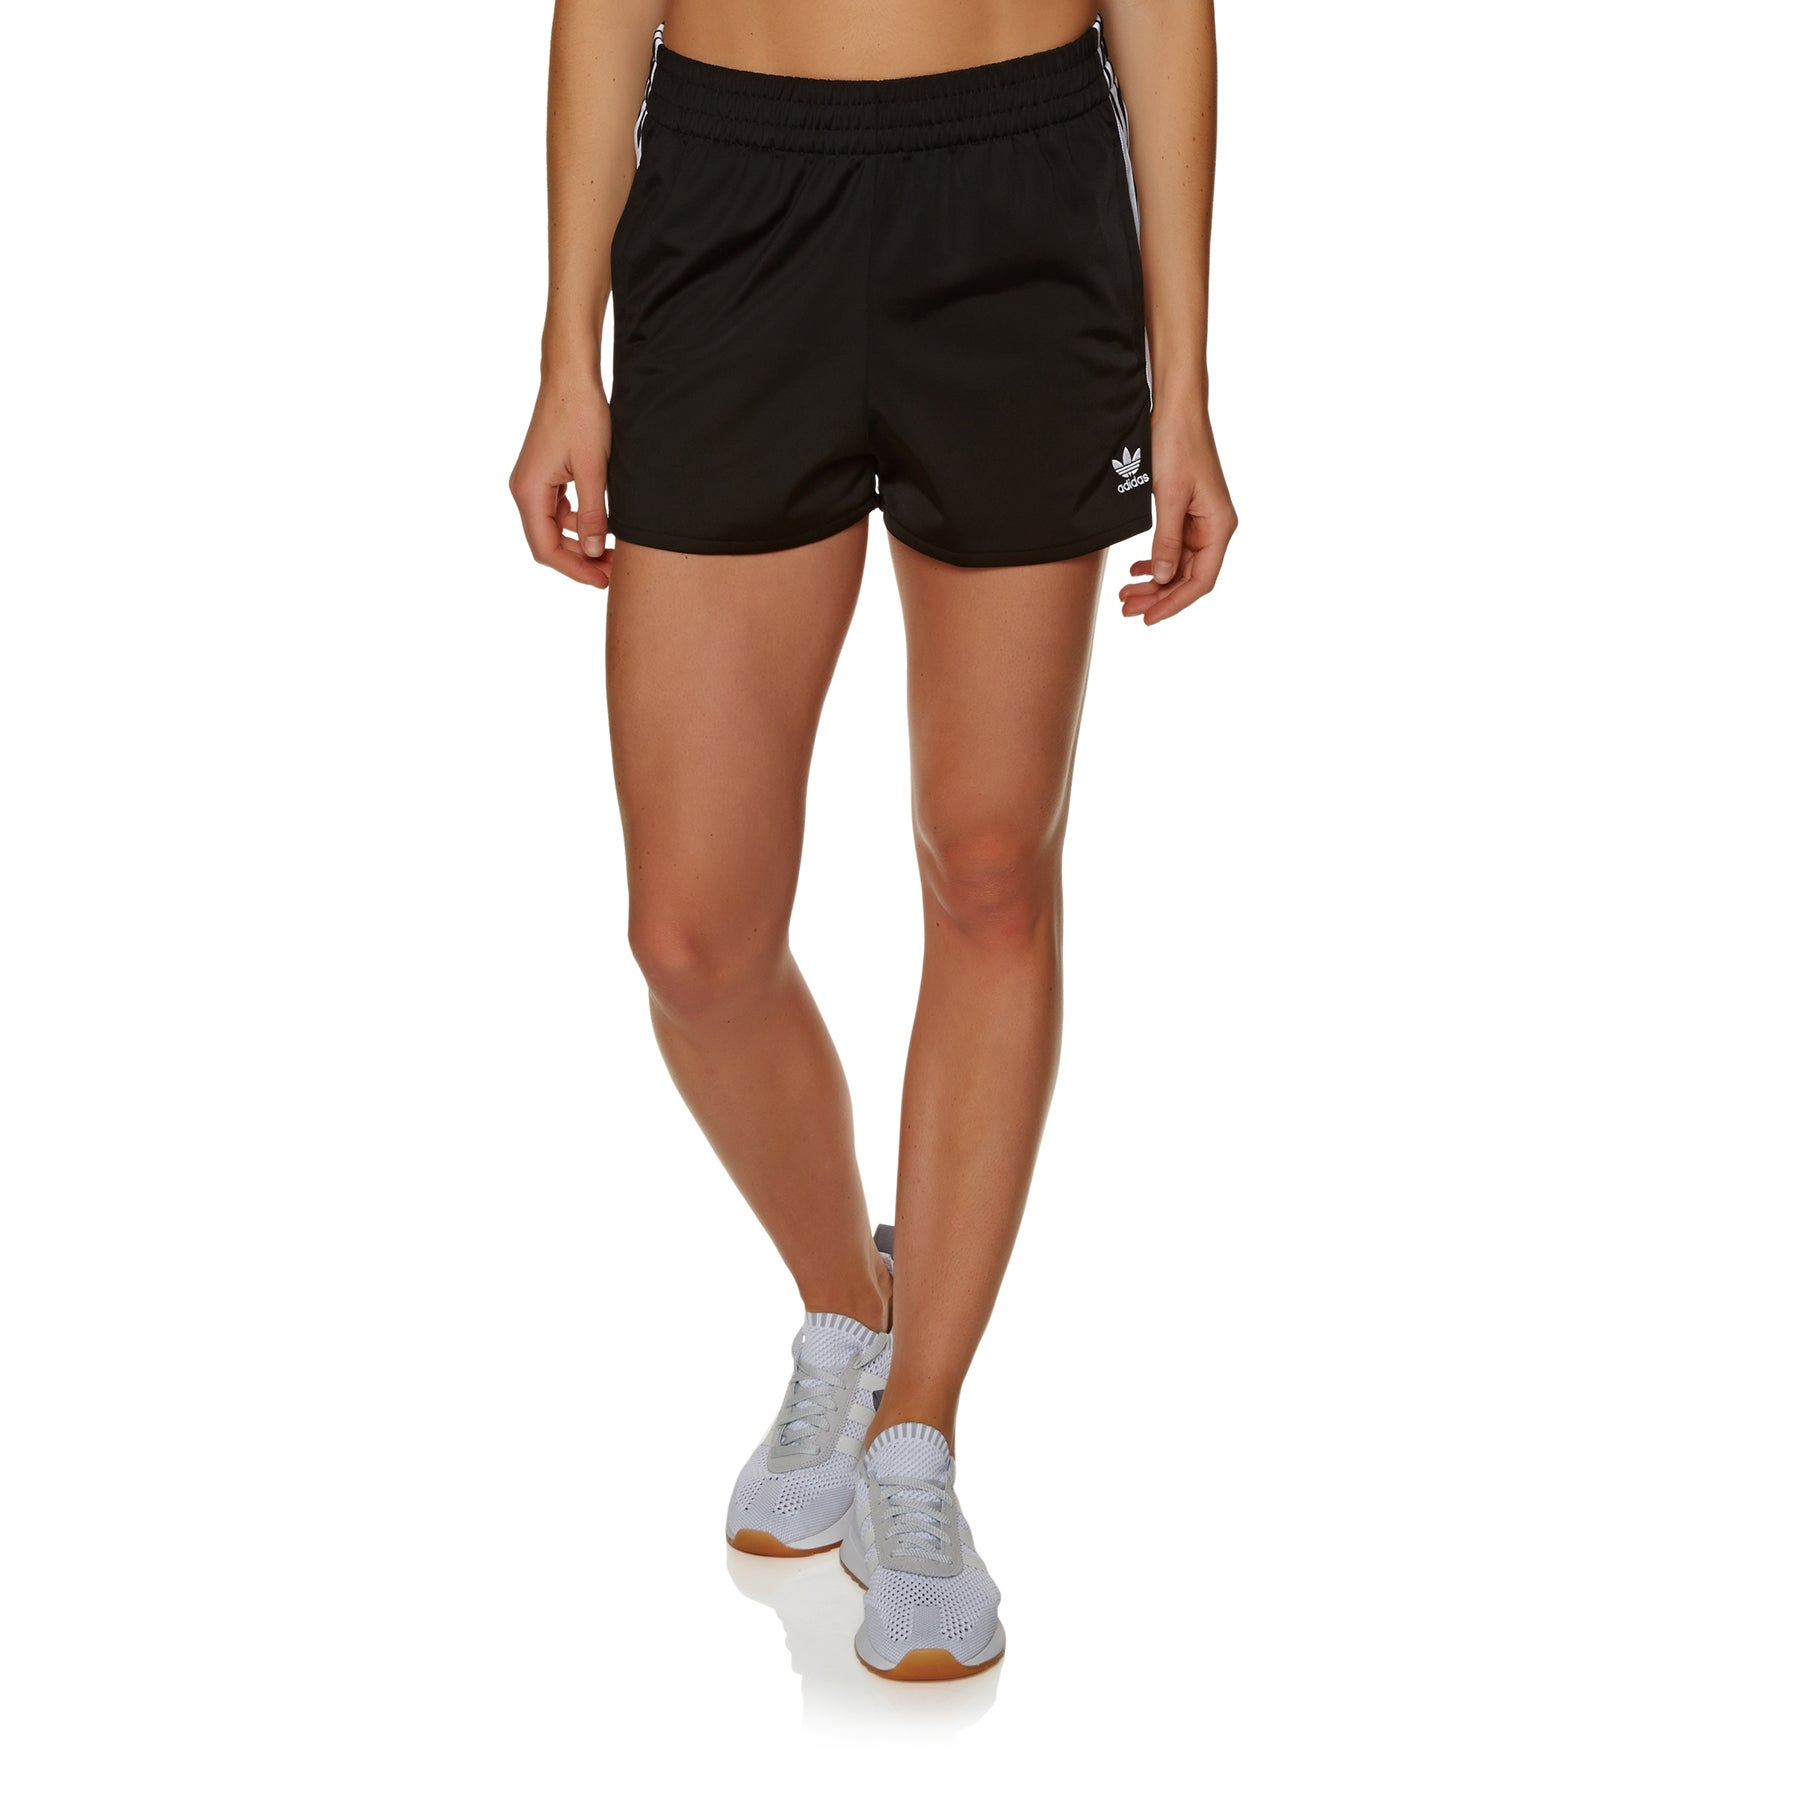 Adidas Originals 3 Stripe Womens Shorts - Black